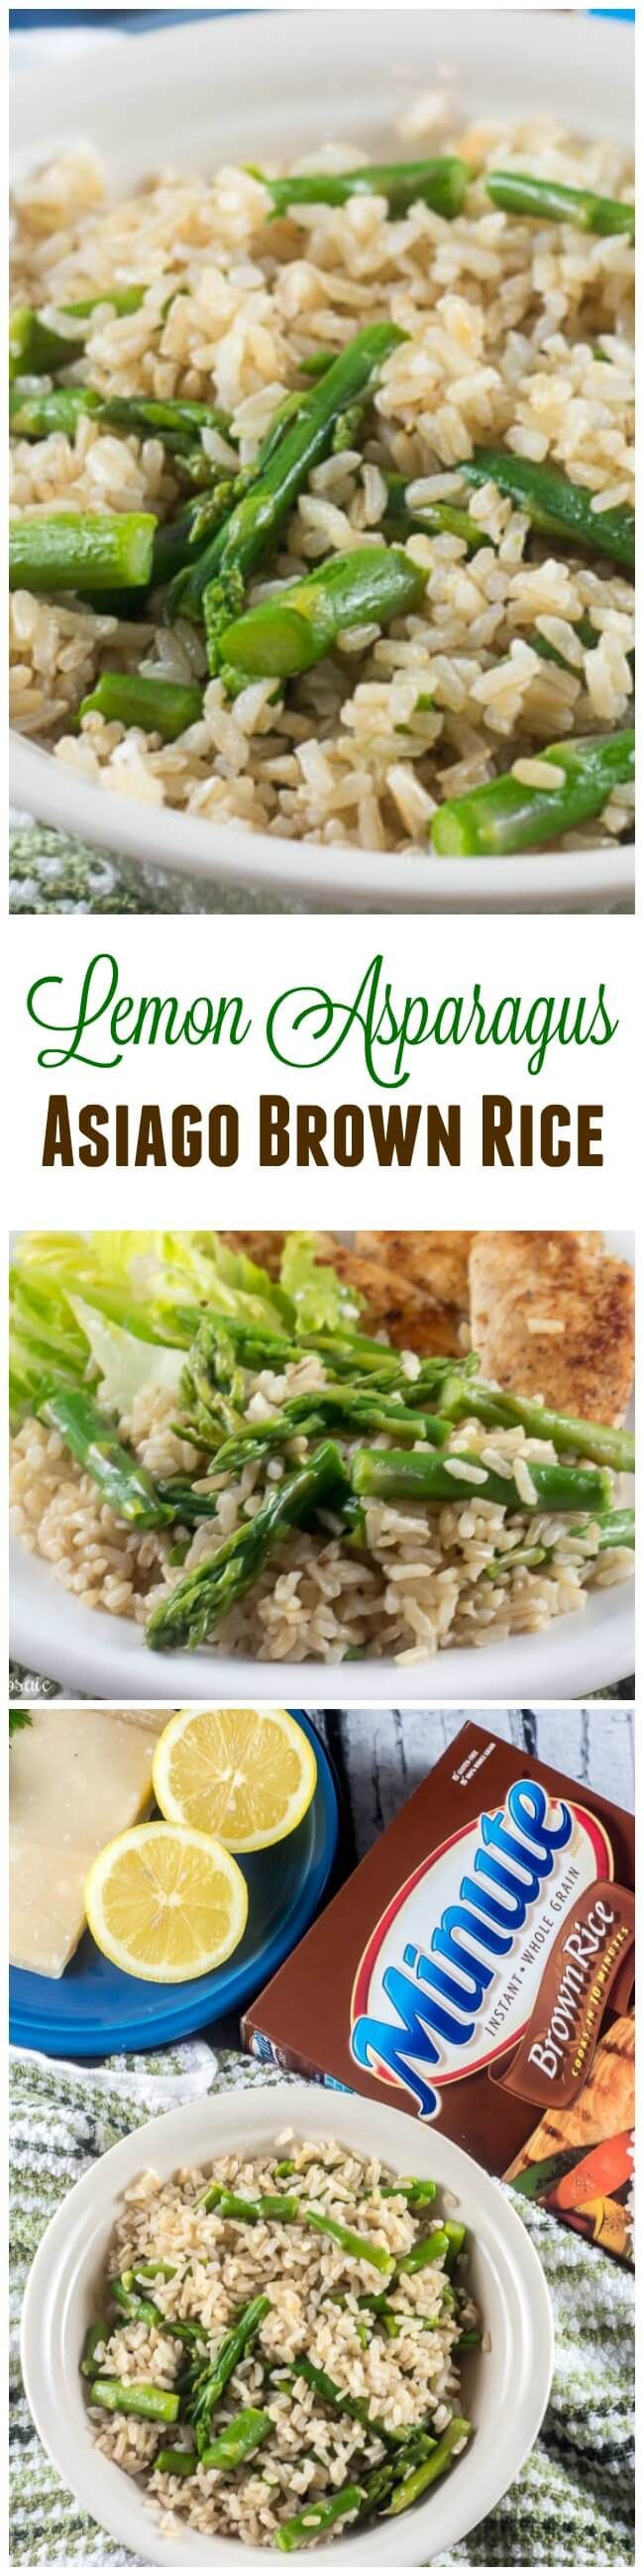 Lemon Asparagus Asiago Brown Rice glams up gluten free whole grain brown rice to make a delicious, elegant yet easy side dish for a quick weeknight meal or an impressive gourmet meal. AD #MealsWithMinute ~ http://FlavorMosaic.com